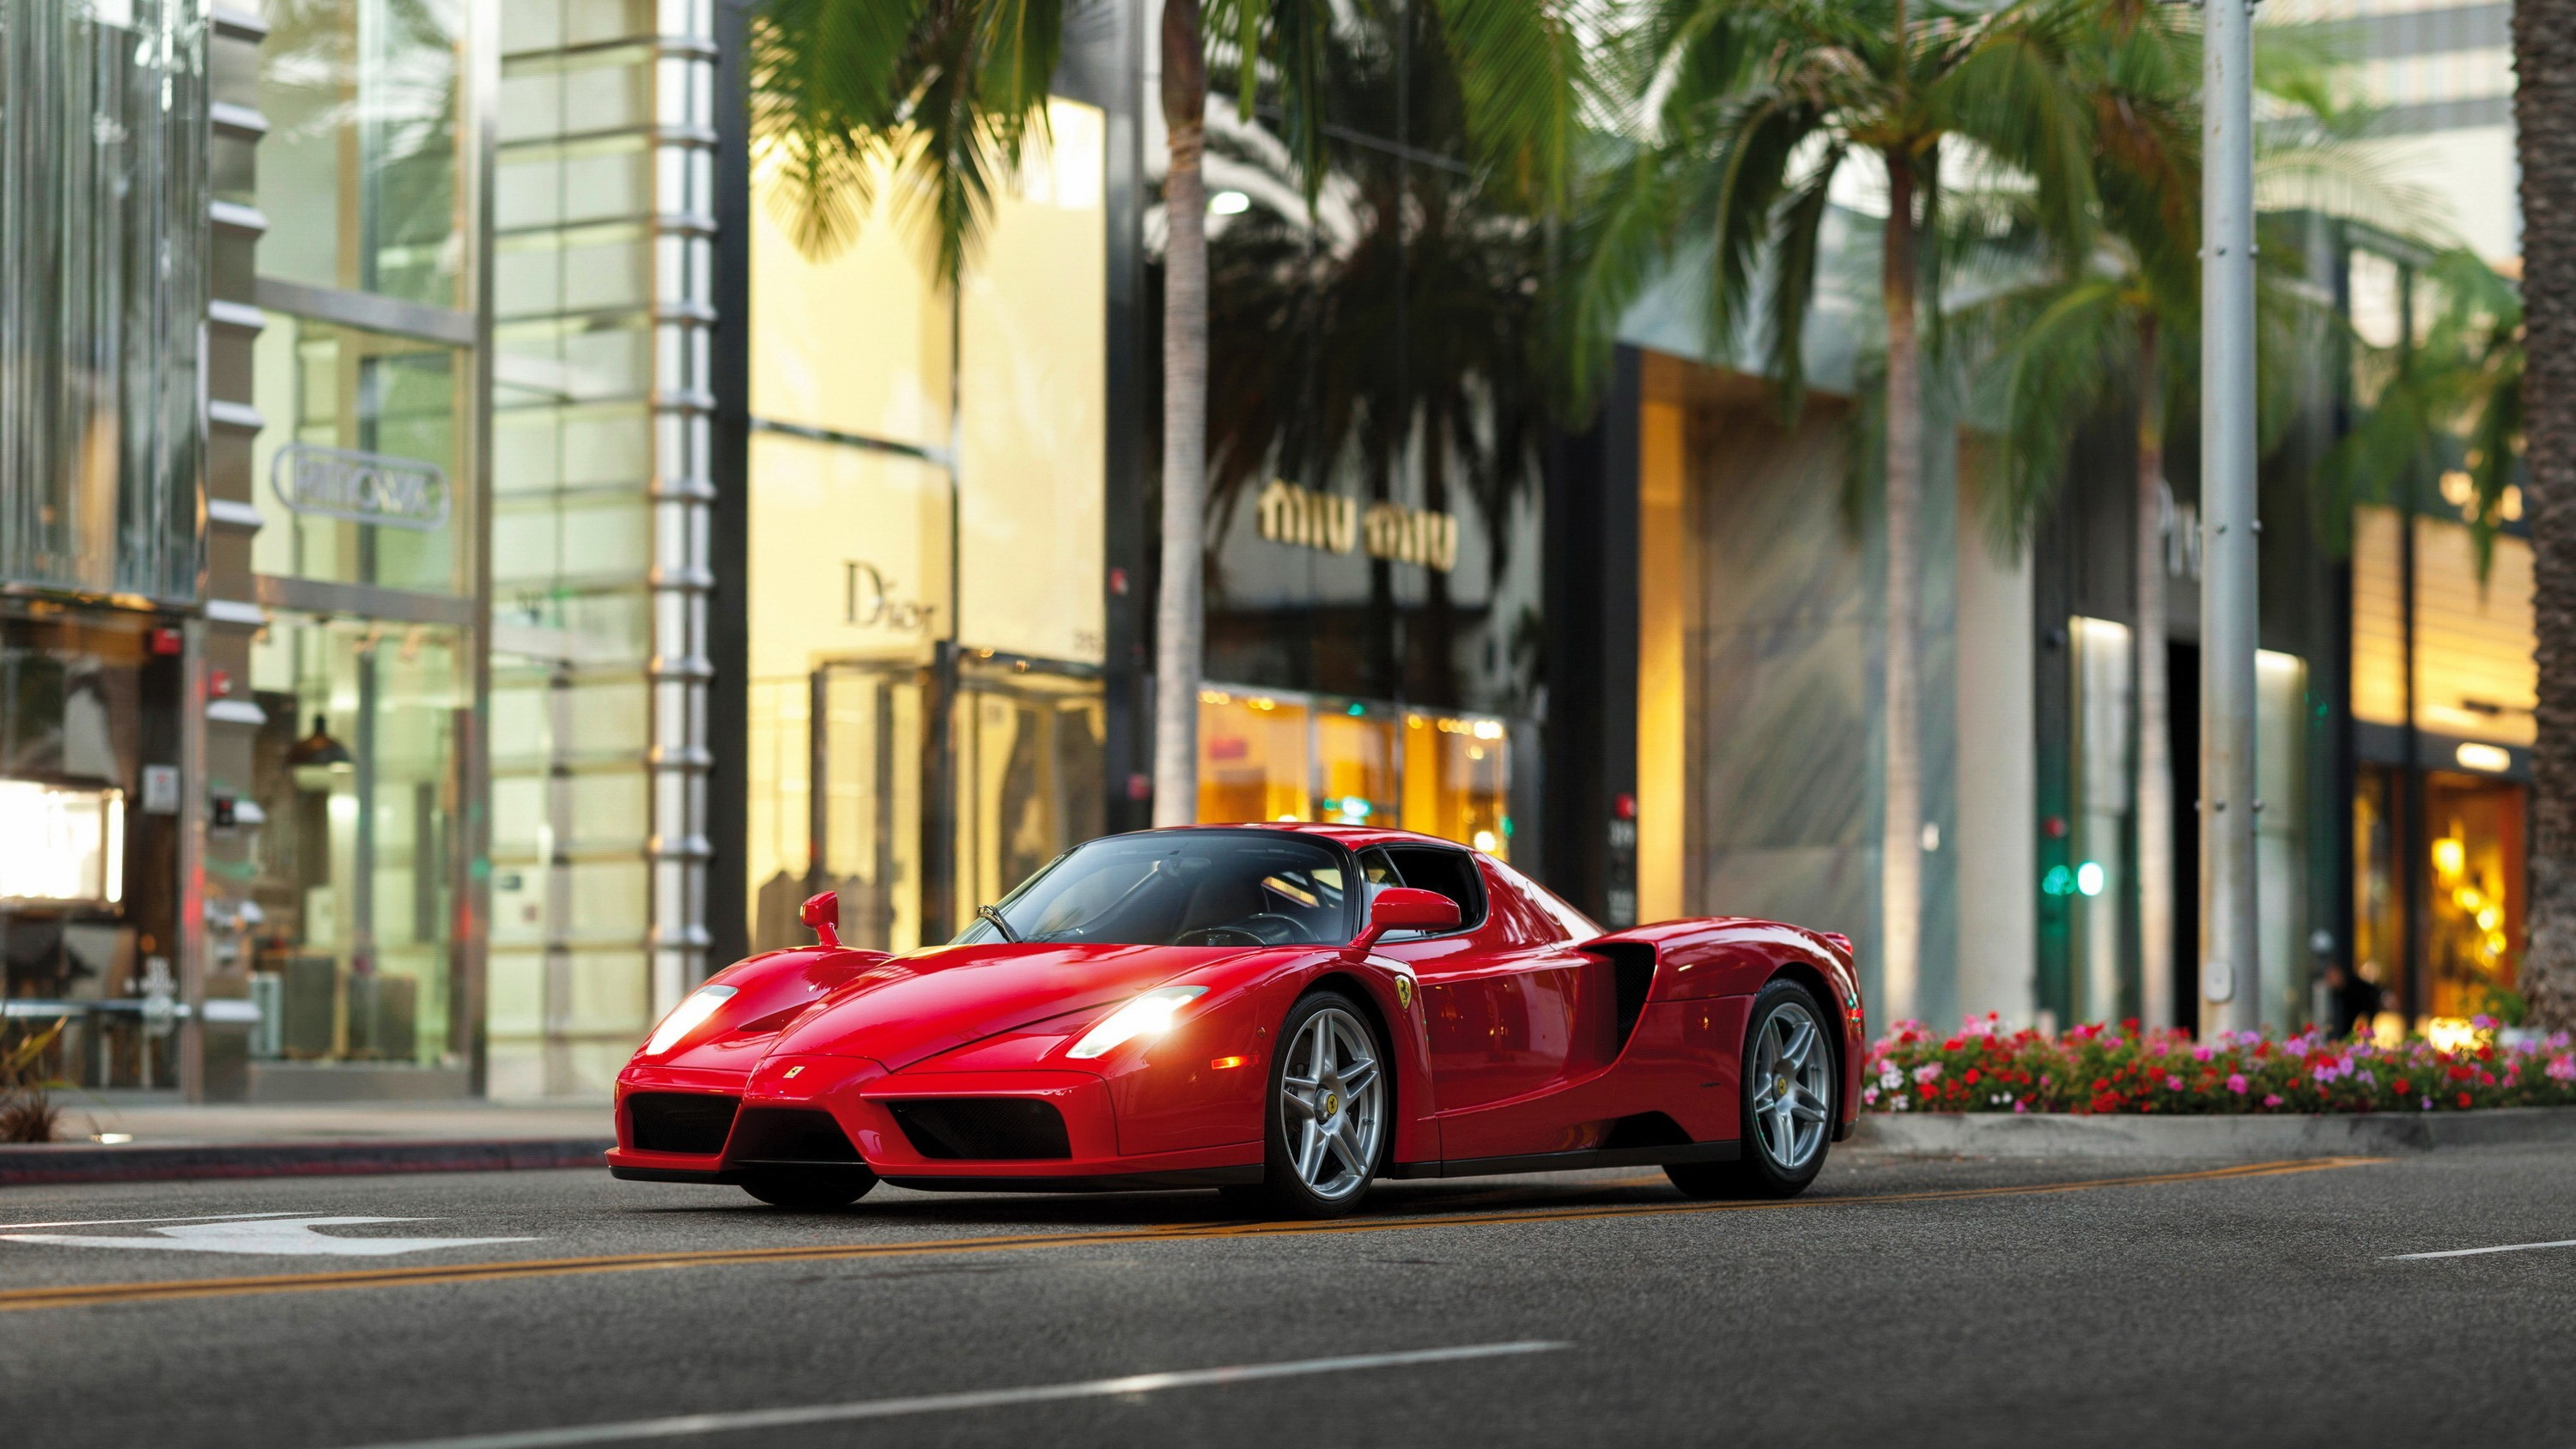 3000x1688 car, Street, Ferrari, Palm Trees, Ferrari Enzo Wallpapers HD / Desktop and  Mobile Backgrounds